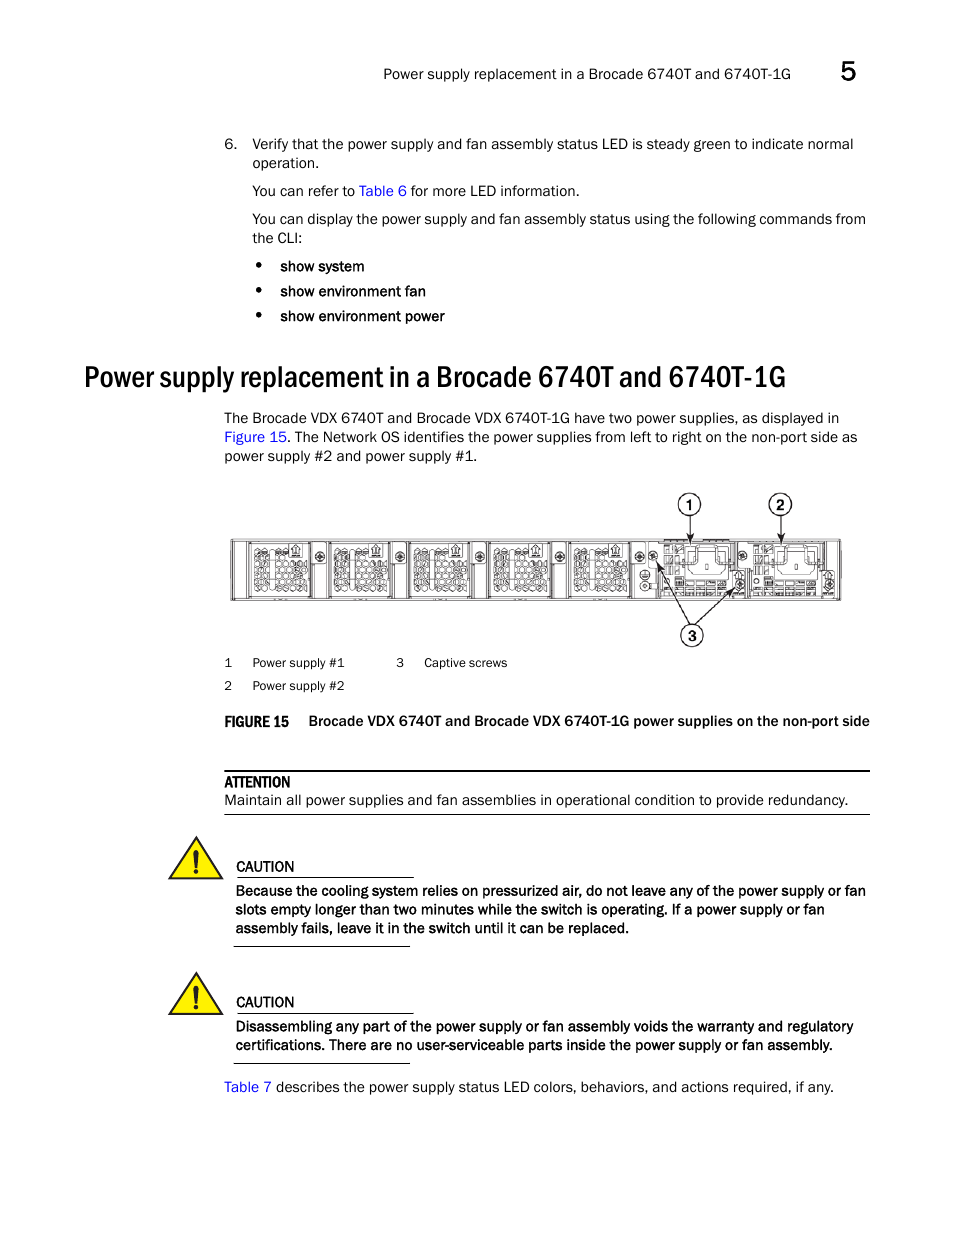 Brocade vdx 6740 hardware reference manual supporting vdx 6740 brocade vdx 6740 hardware reference manual supporting vdx 6740 vdx 6740t and vdx 6740t 1g user manual page 51 78 xflitez Image collections